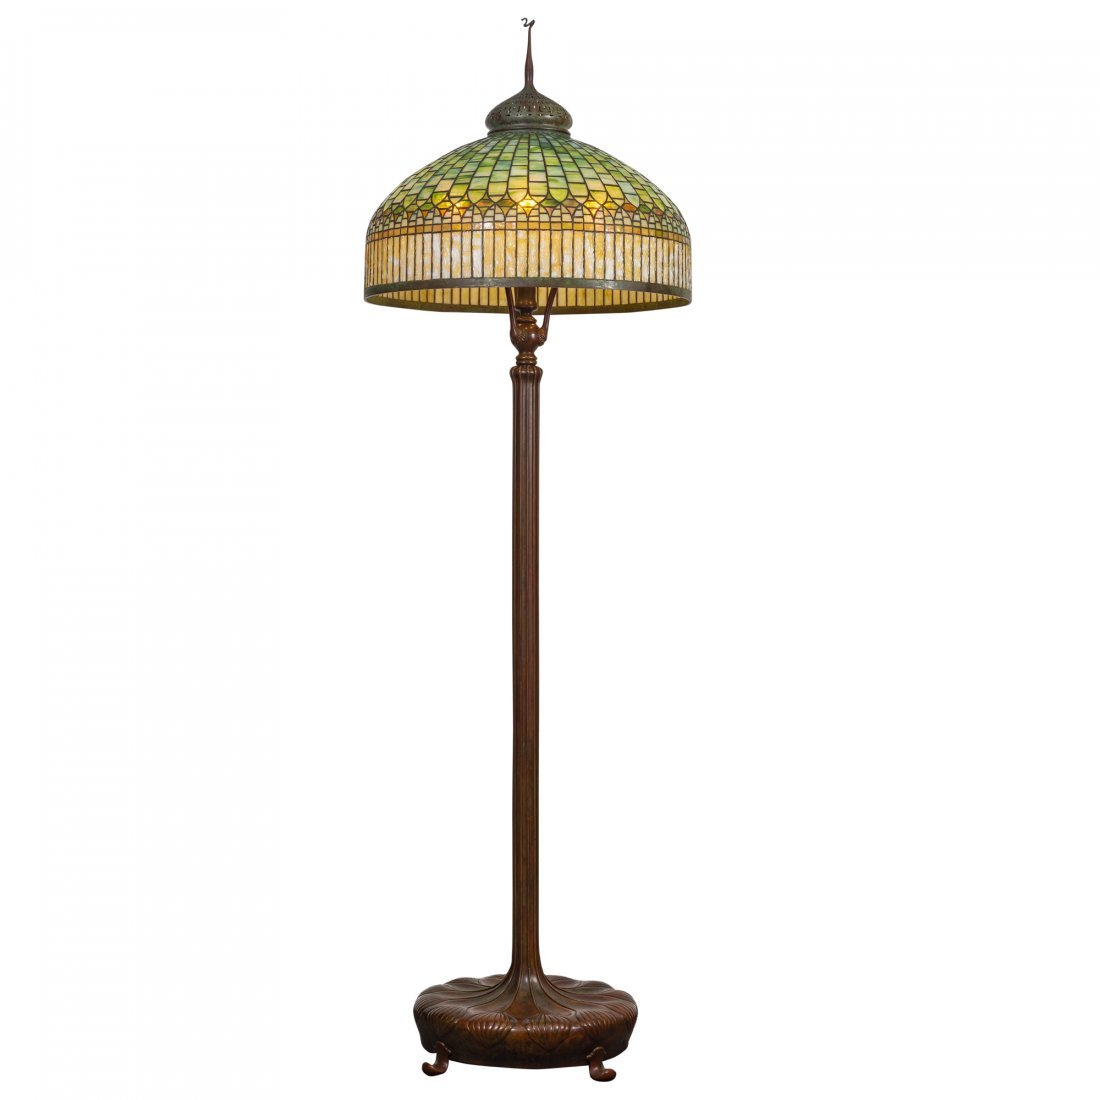 Very Fine Tiffany Curtain Border Floor Lamp